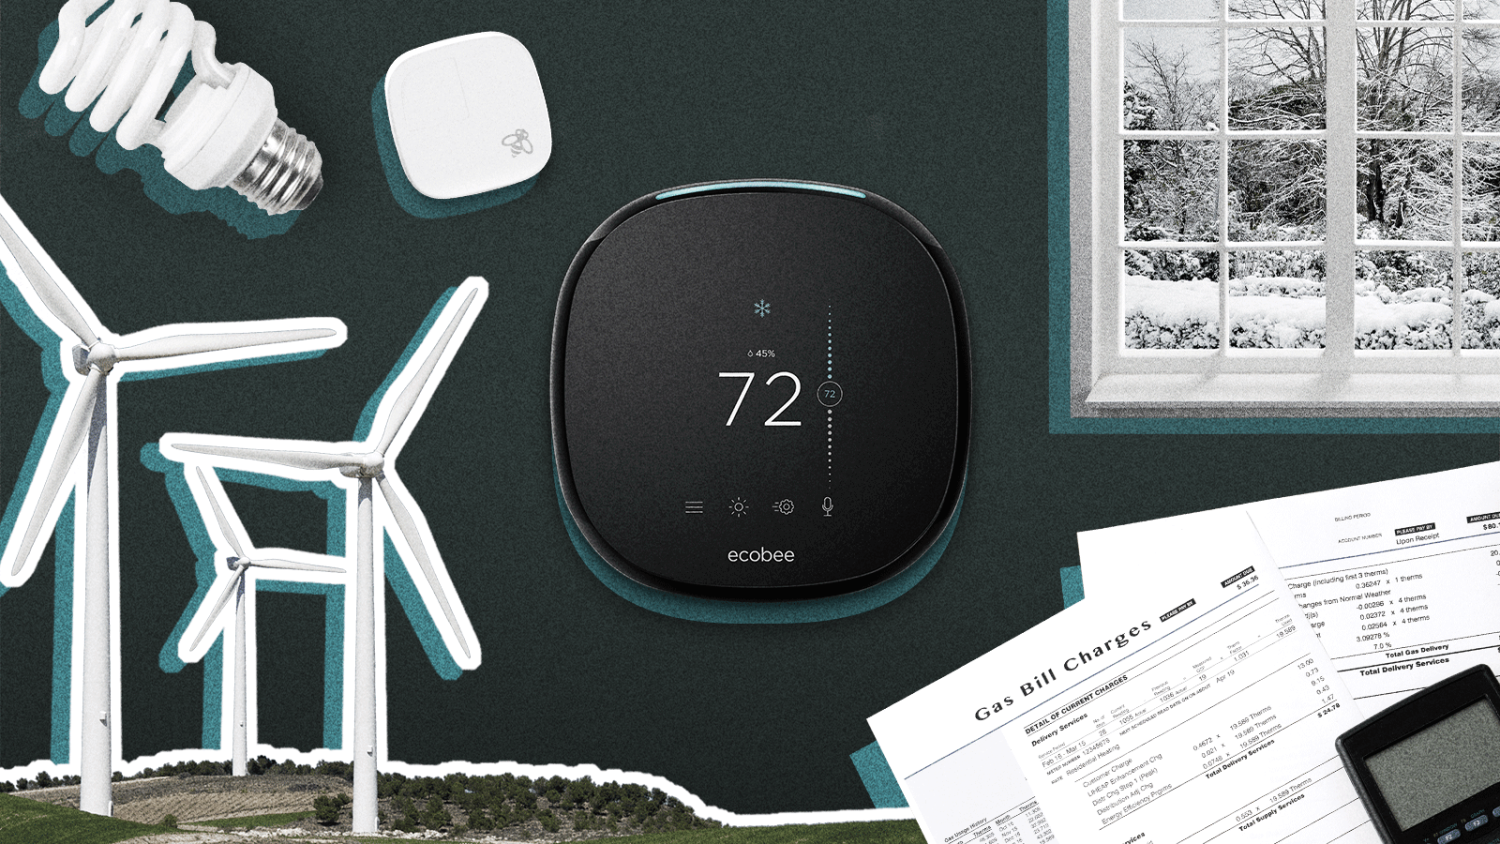 Picture of a thermostat in the centre, an ecobee Room Sensor, an LED light bulb, a wind panel, and energy bills